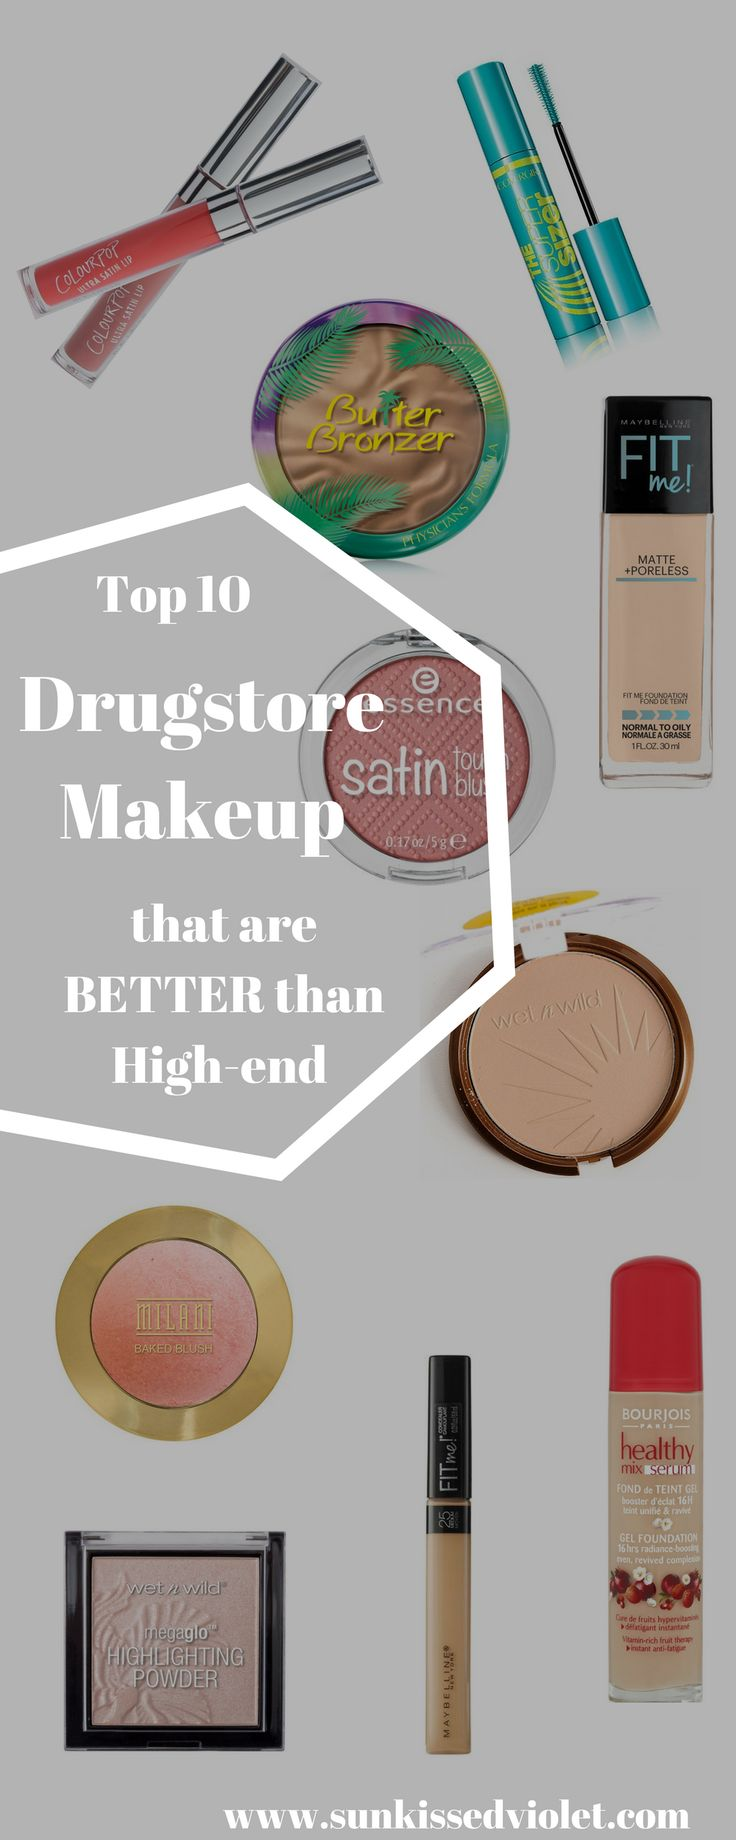 Top 10 Drugstore Makeup that are Better than High-end #cosmetics #drugstoremakeup #makeup #wetnwild #maybelline #colourpop #covergirl #essencecosmetics Maybelline Fit Me Wet n Wild Reserve your canaba Covergirl supersizer mascara Wet n Wild megaglow